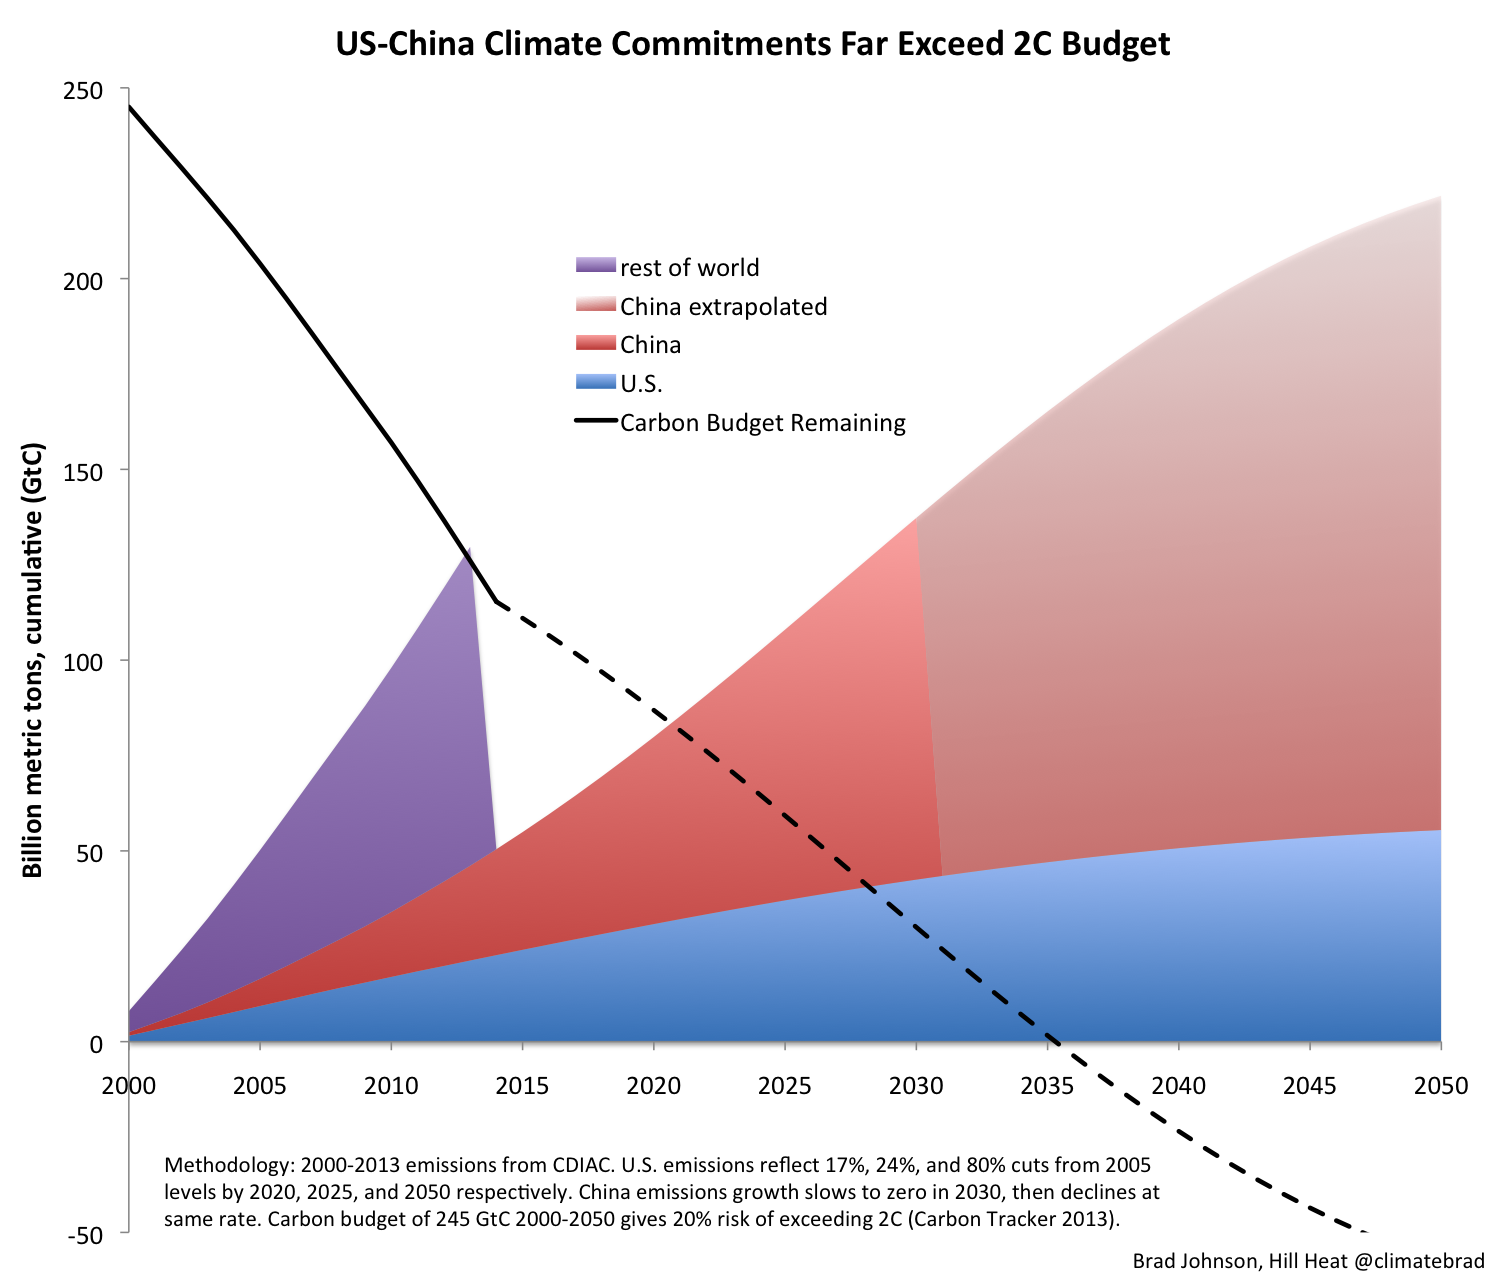 US-China Climate Commitments Far Exceed Budget